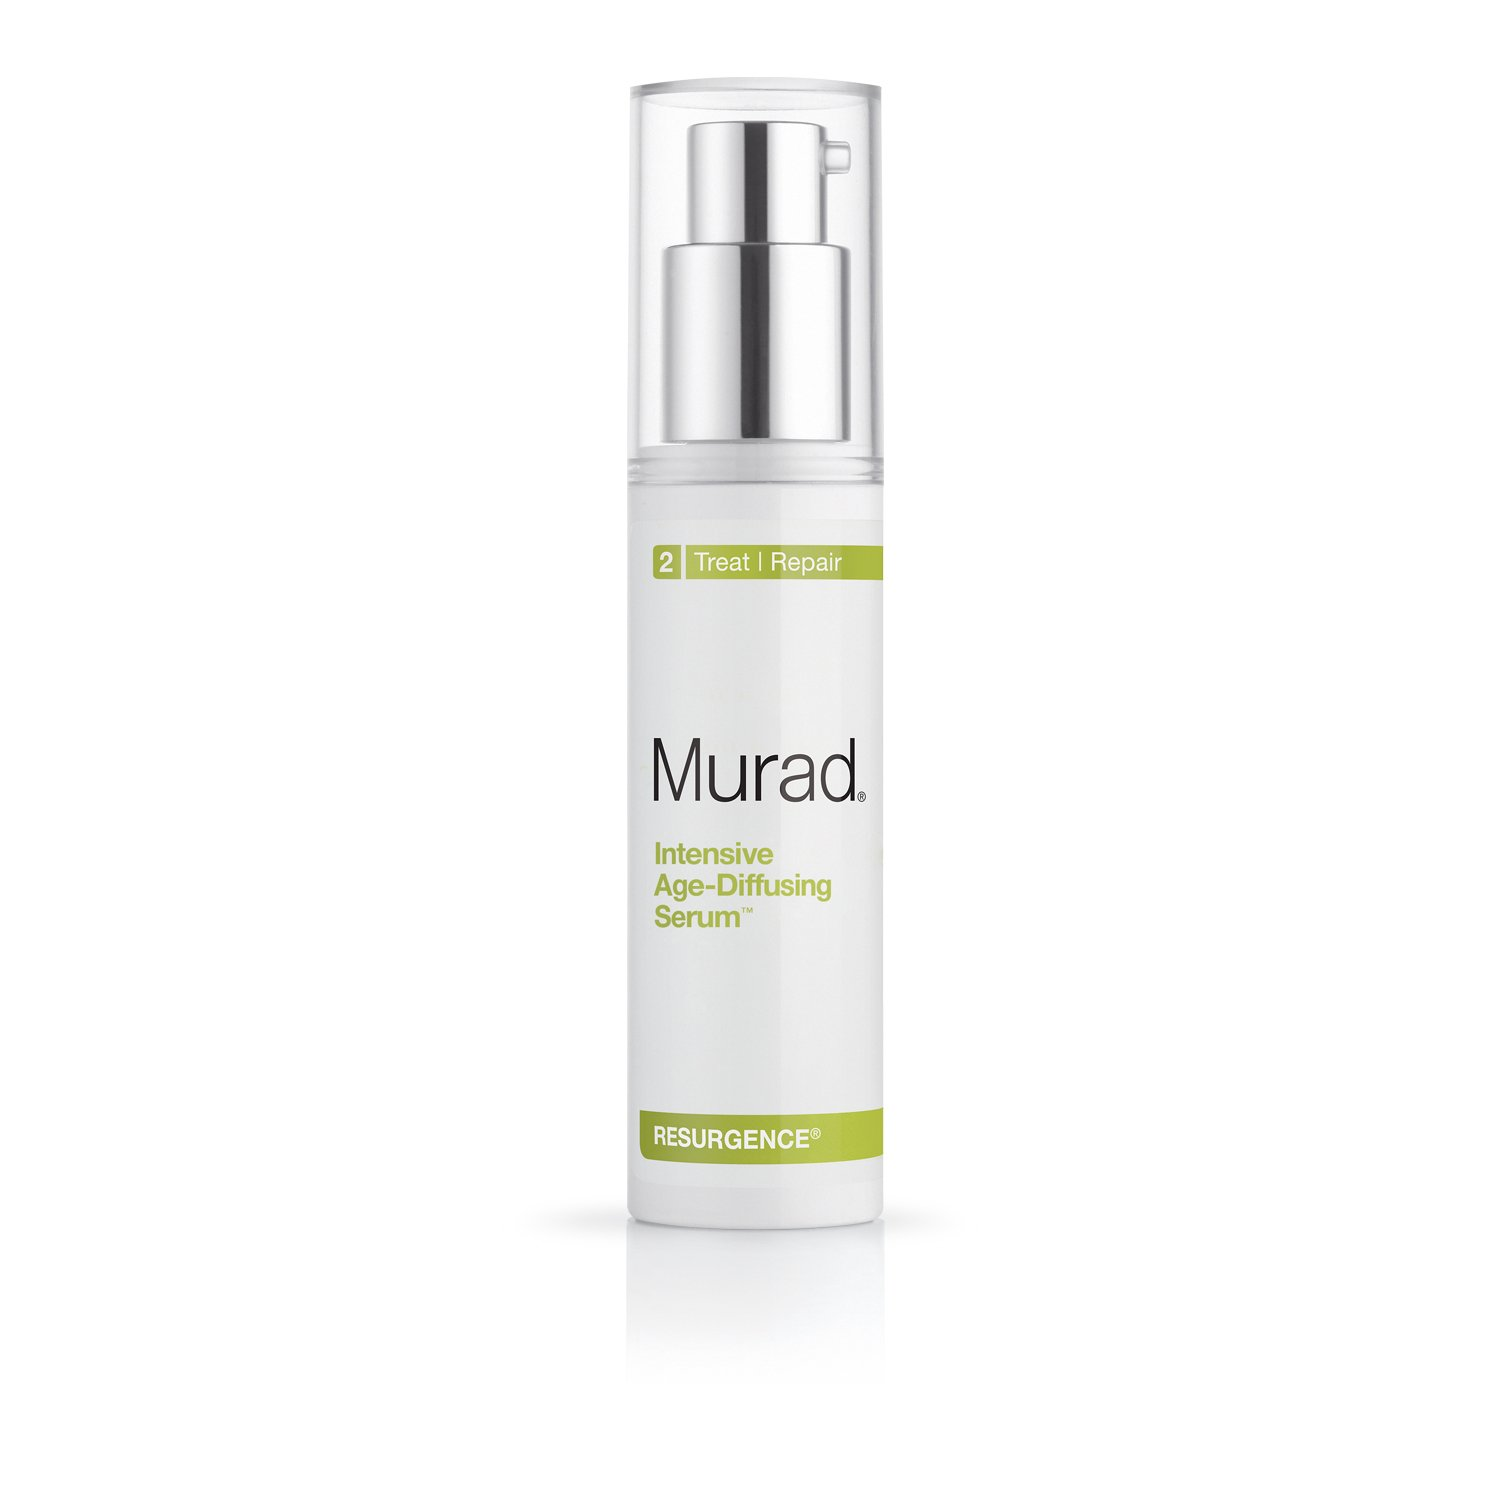 Murad Intensive age diffusing serum, 30ml (1.0oz) 80574MU